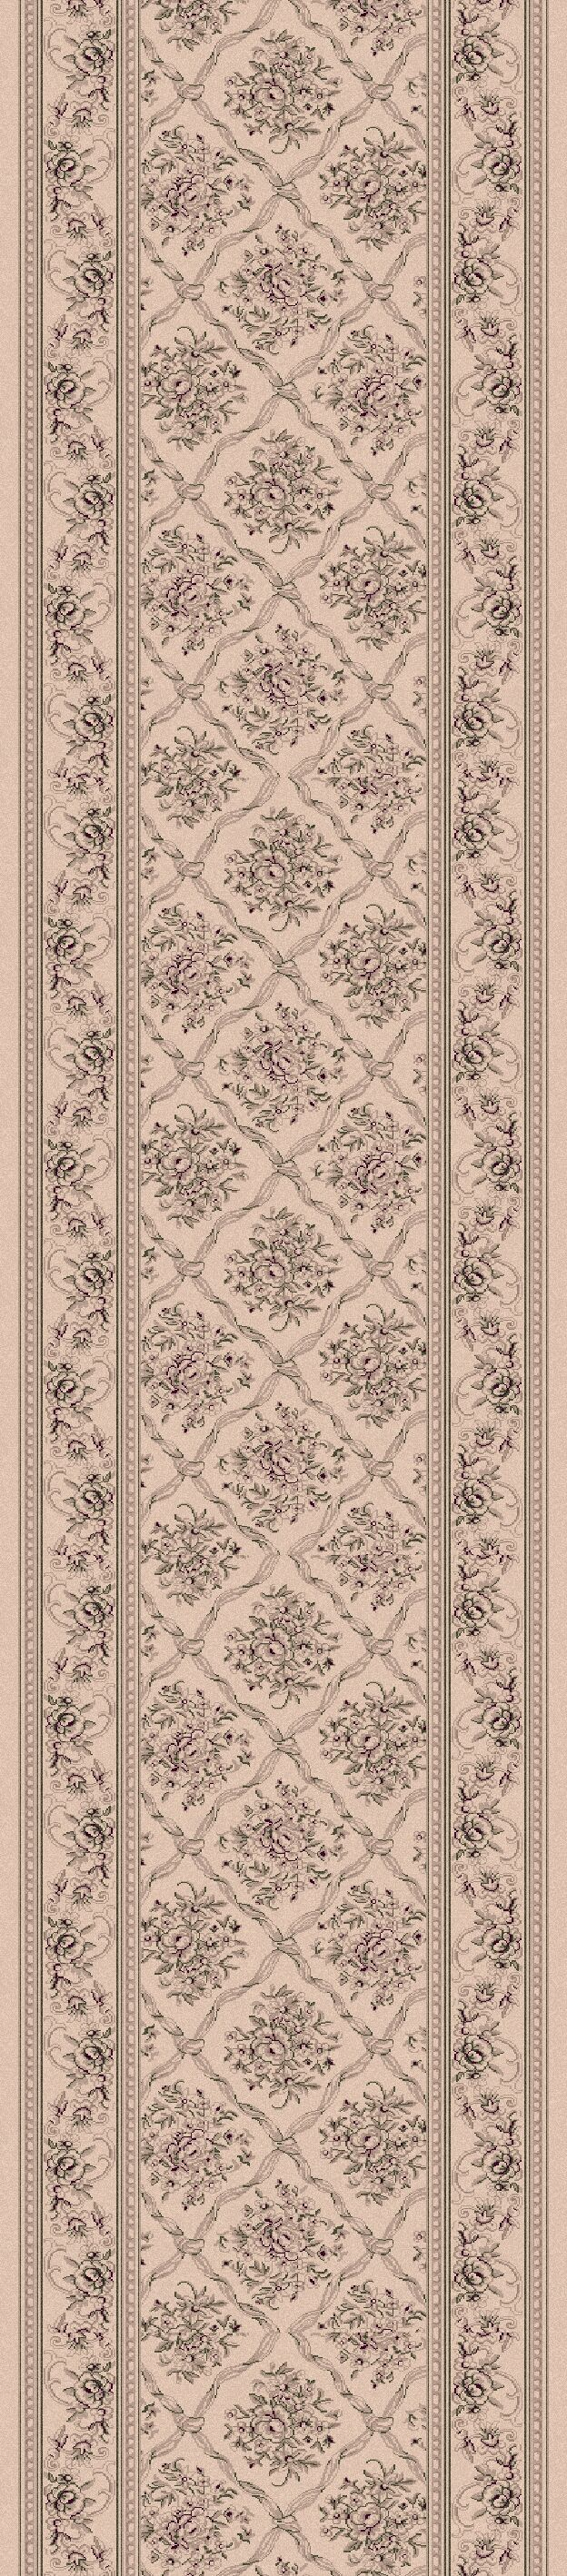 Atterbury Checked Ivory Rug Rug Size: Runner 2'2